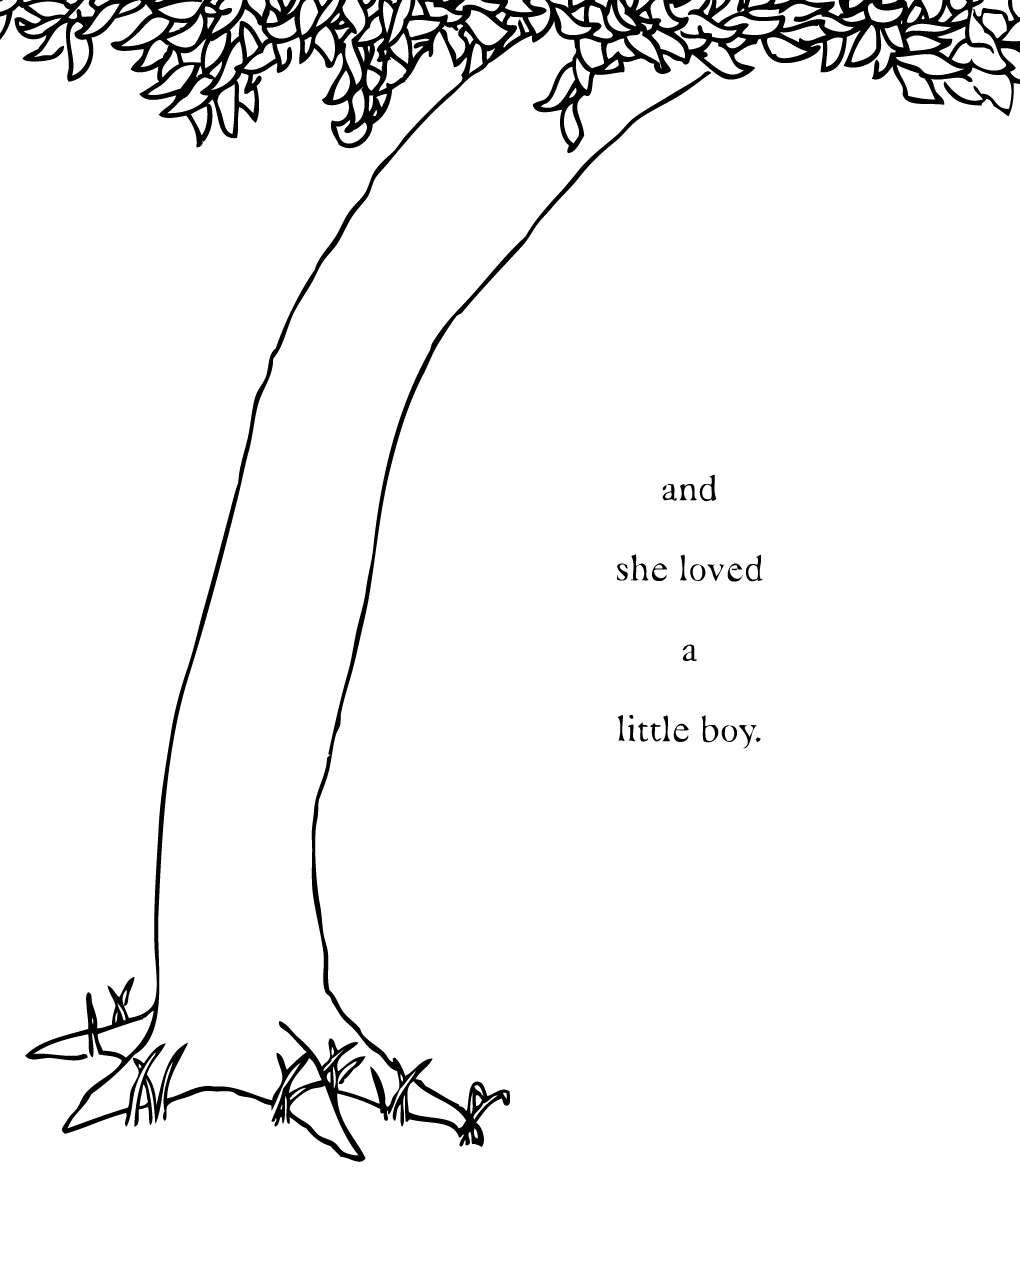 Worksheets The Giving Tree Worksheets the giving tree by shel silverstein deanna williams on prezi